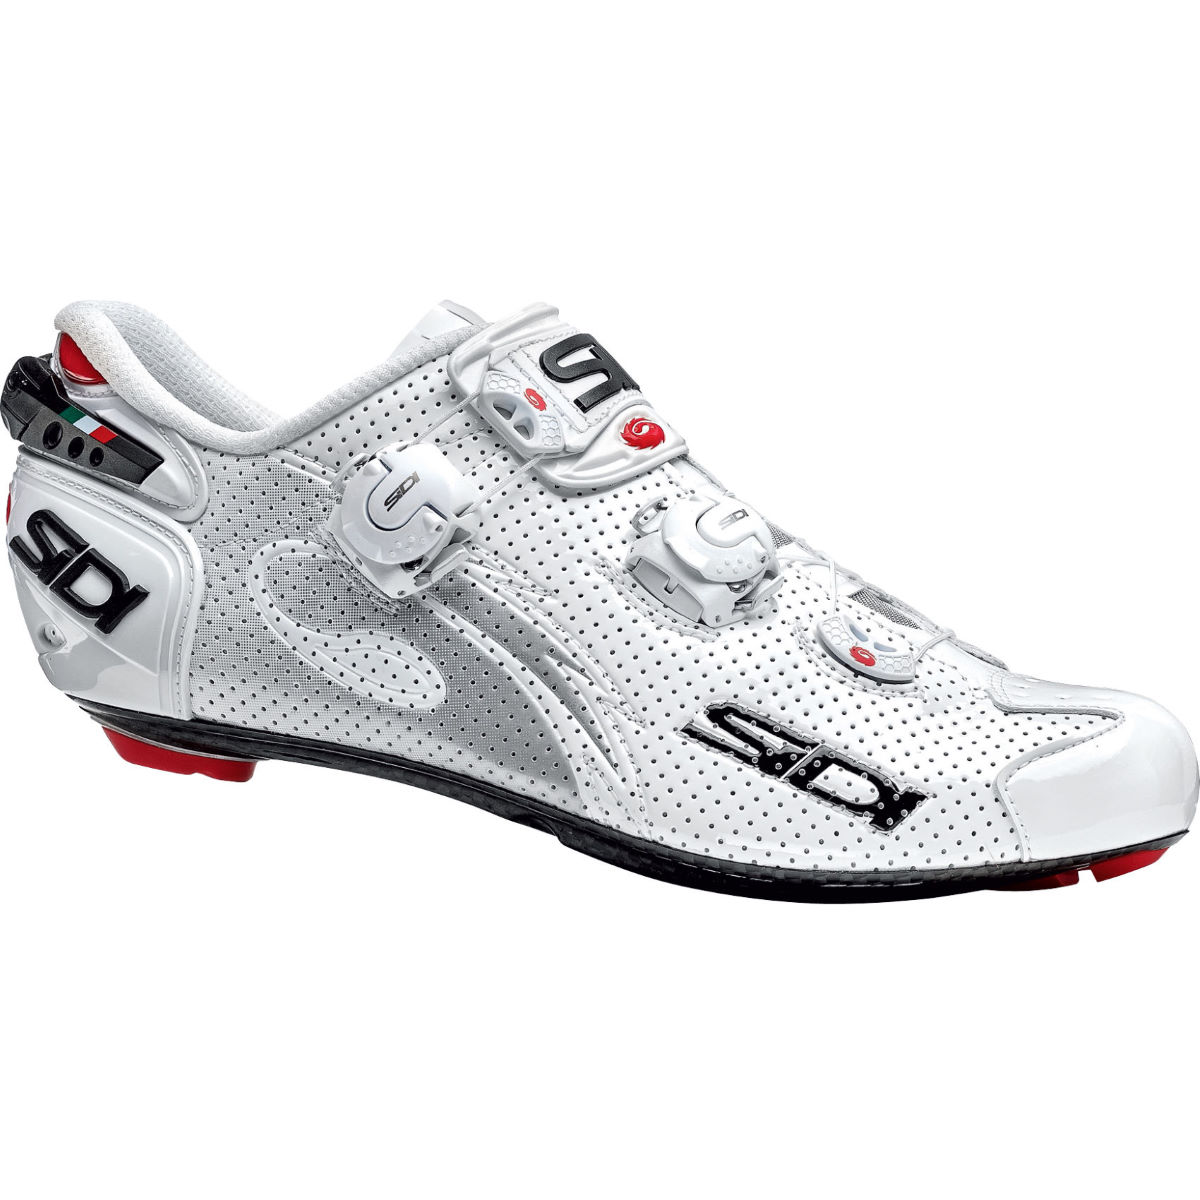 Chaussures de route Sidi Wire Carbone AIR - 40 Blanc/Blanc